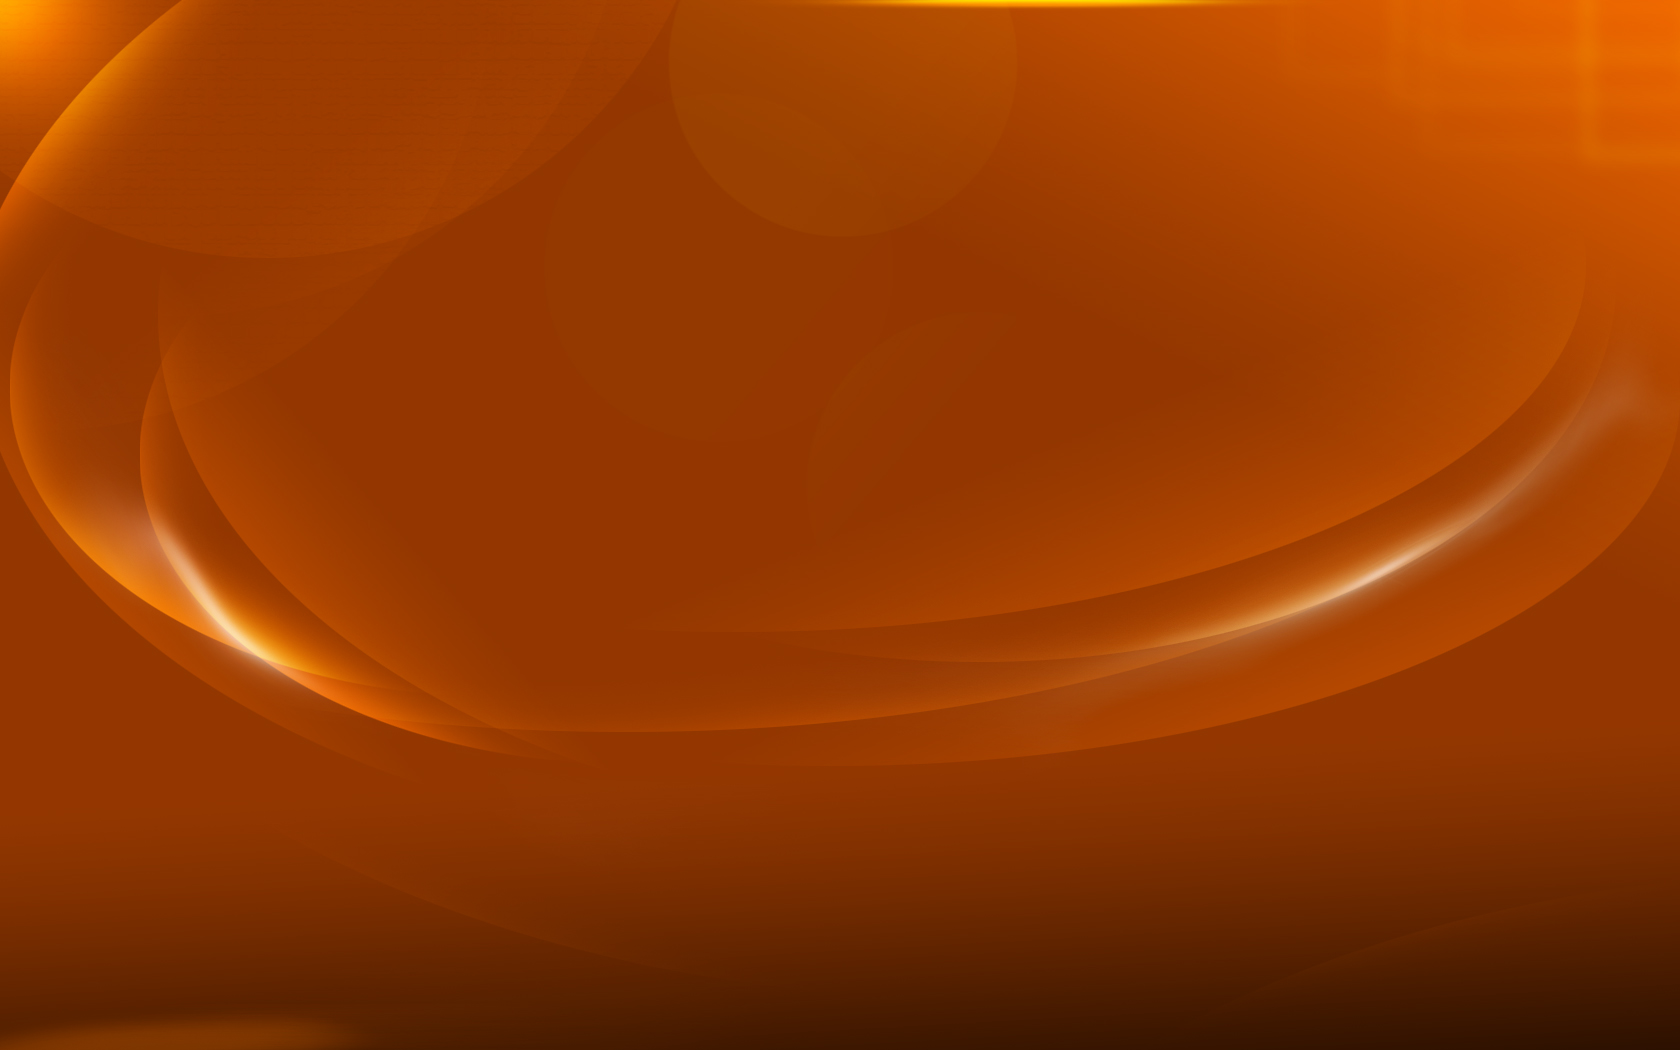 Orange Wallpaper By Dallem 1680x1050 pixel Food and drink HD 1680x1050